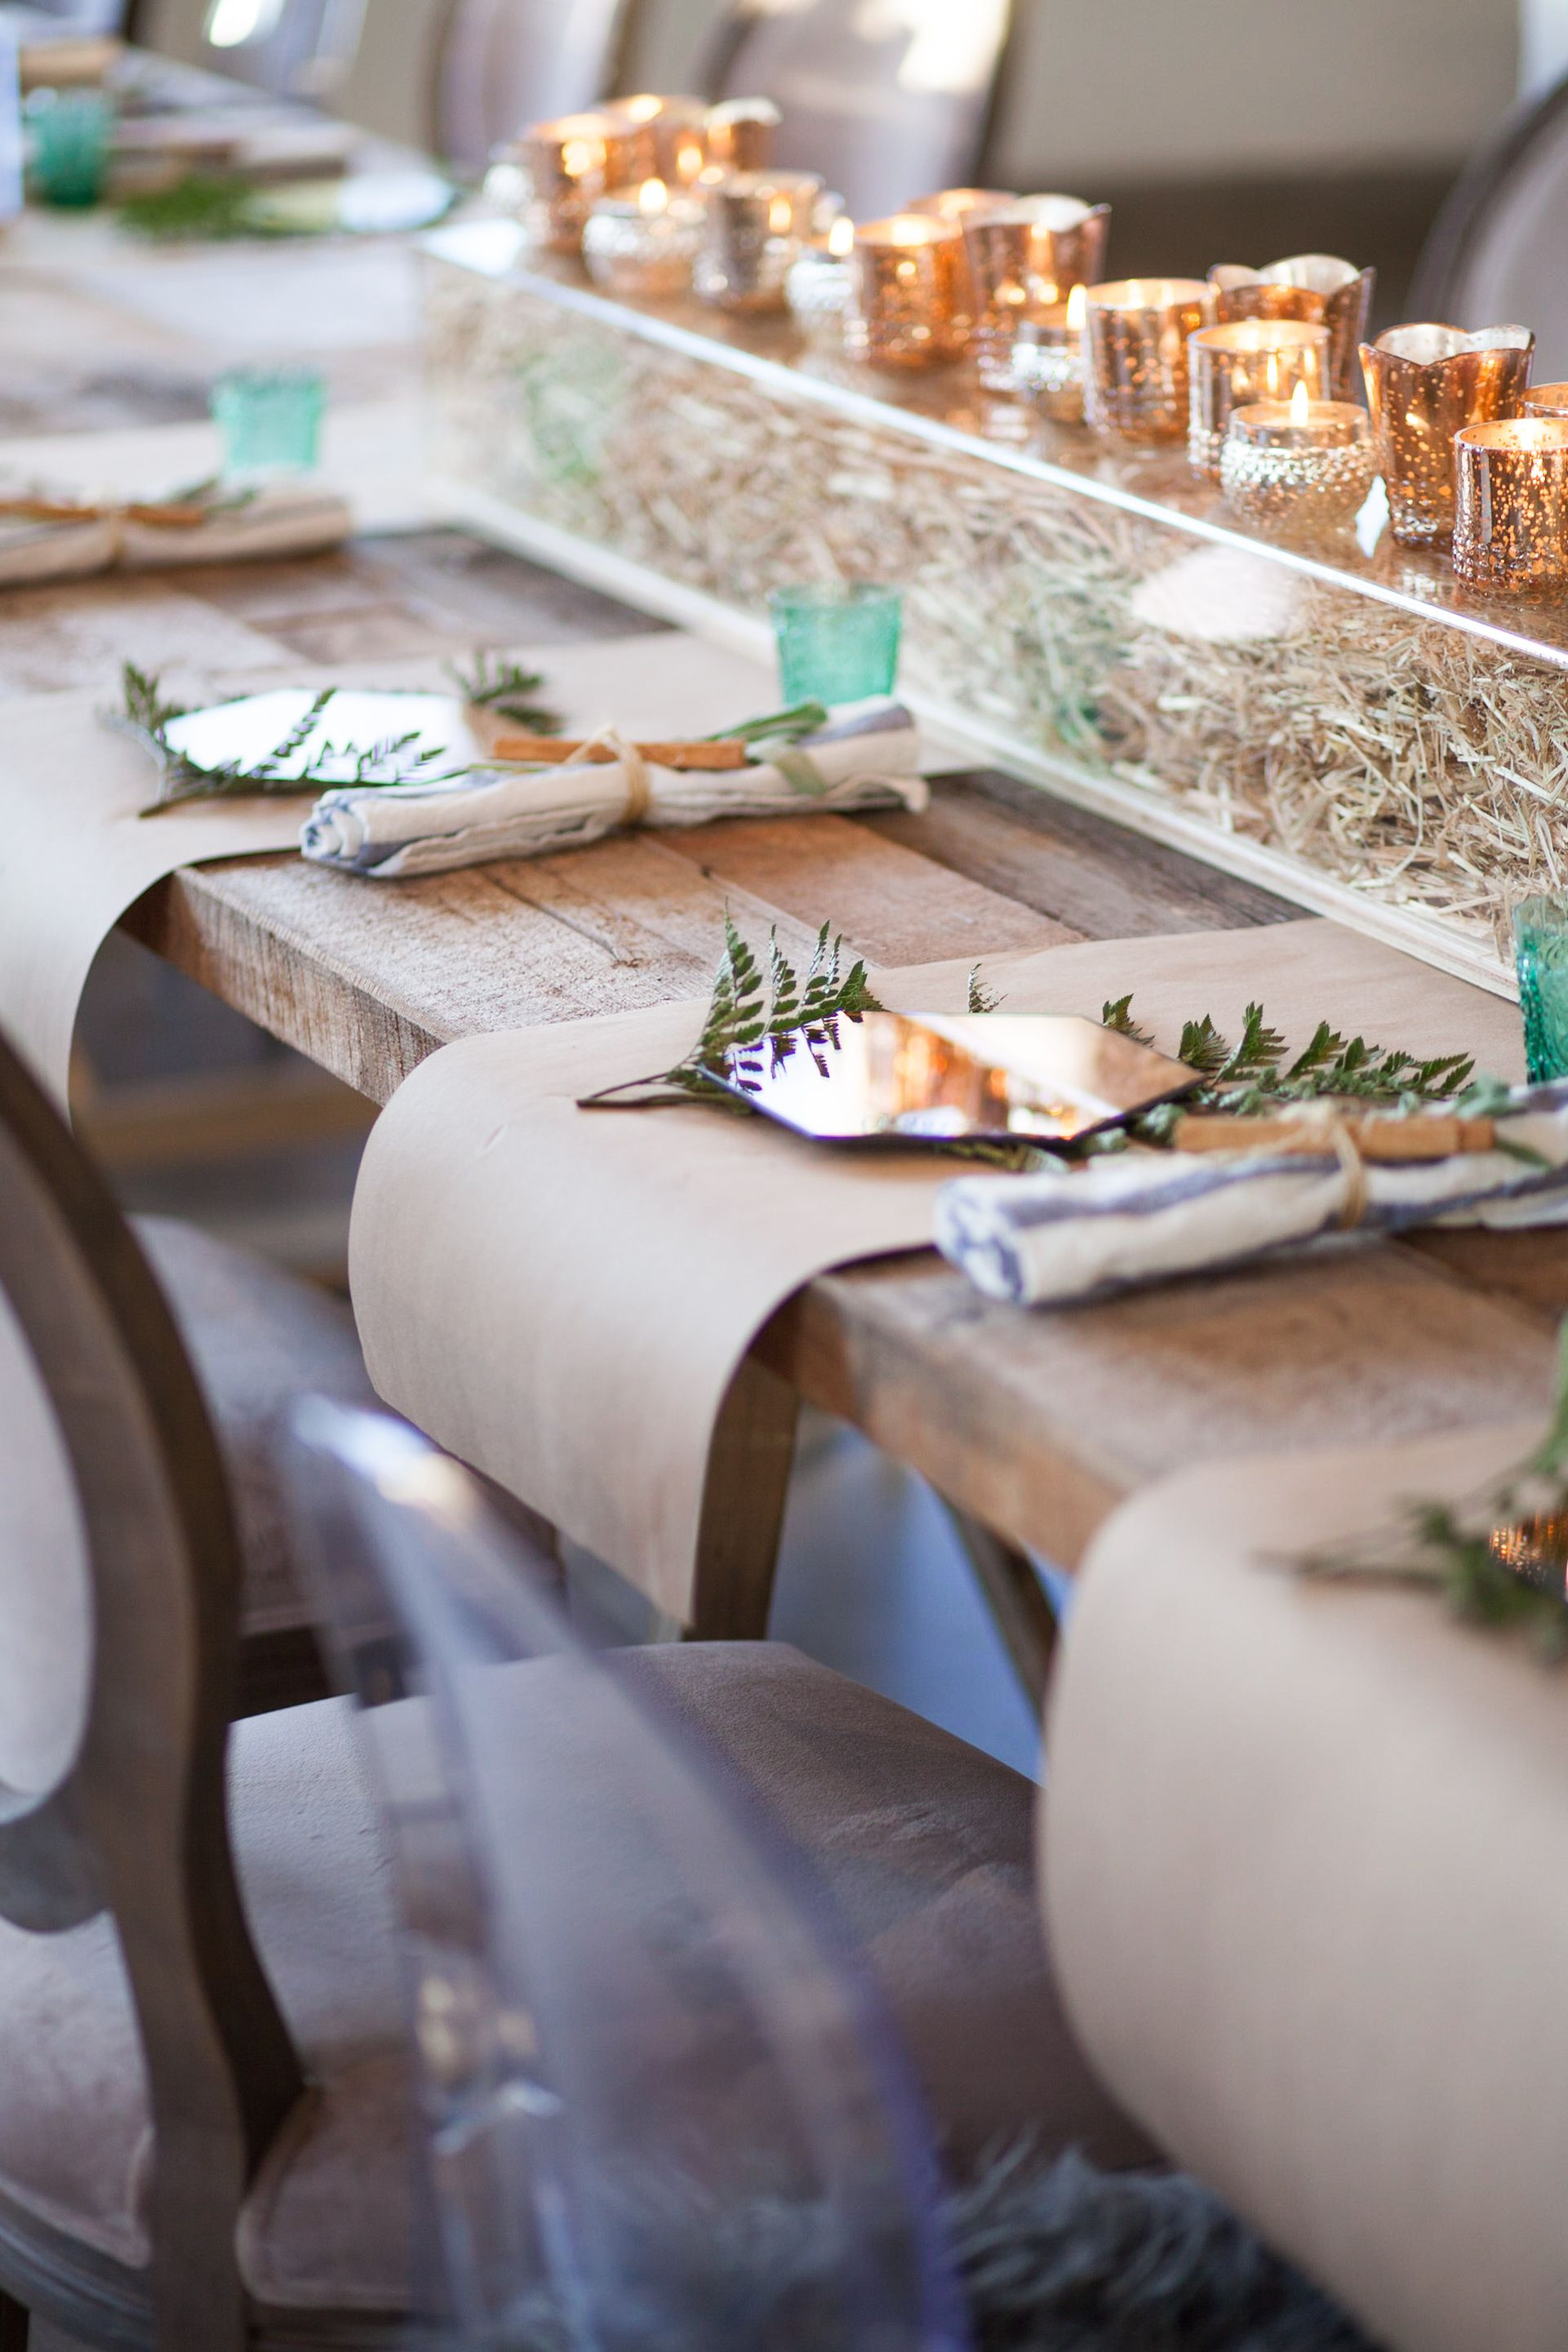 Private Event Featuring Butcher Paper Placemats Event